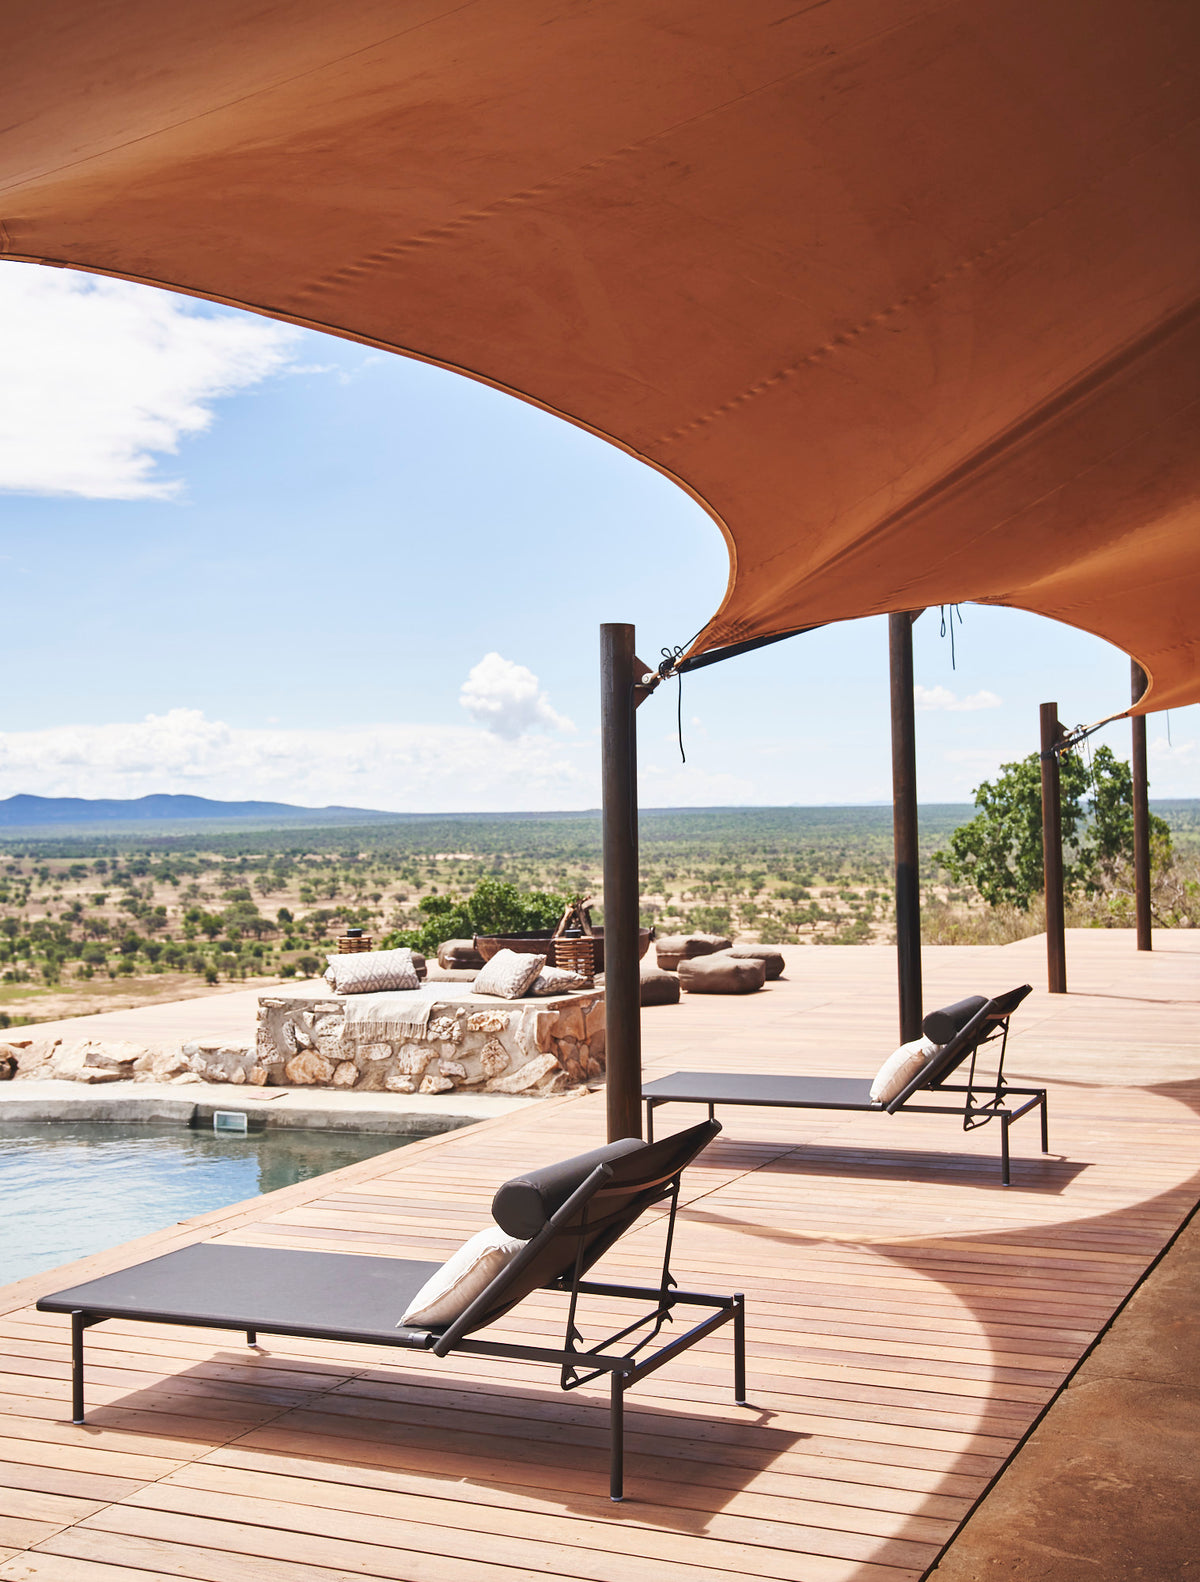 Habitas, Namibia - hotel pool with canvas sunshade, lounge chairs, and a view of bush and mountains